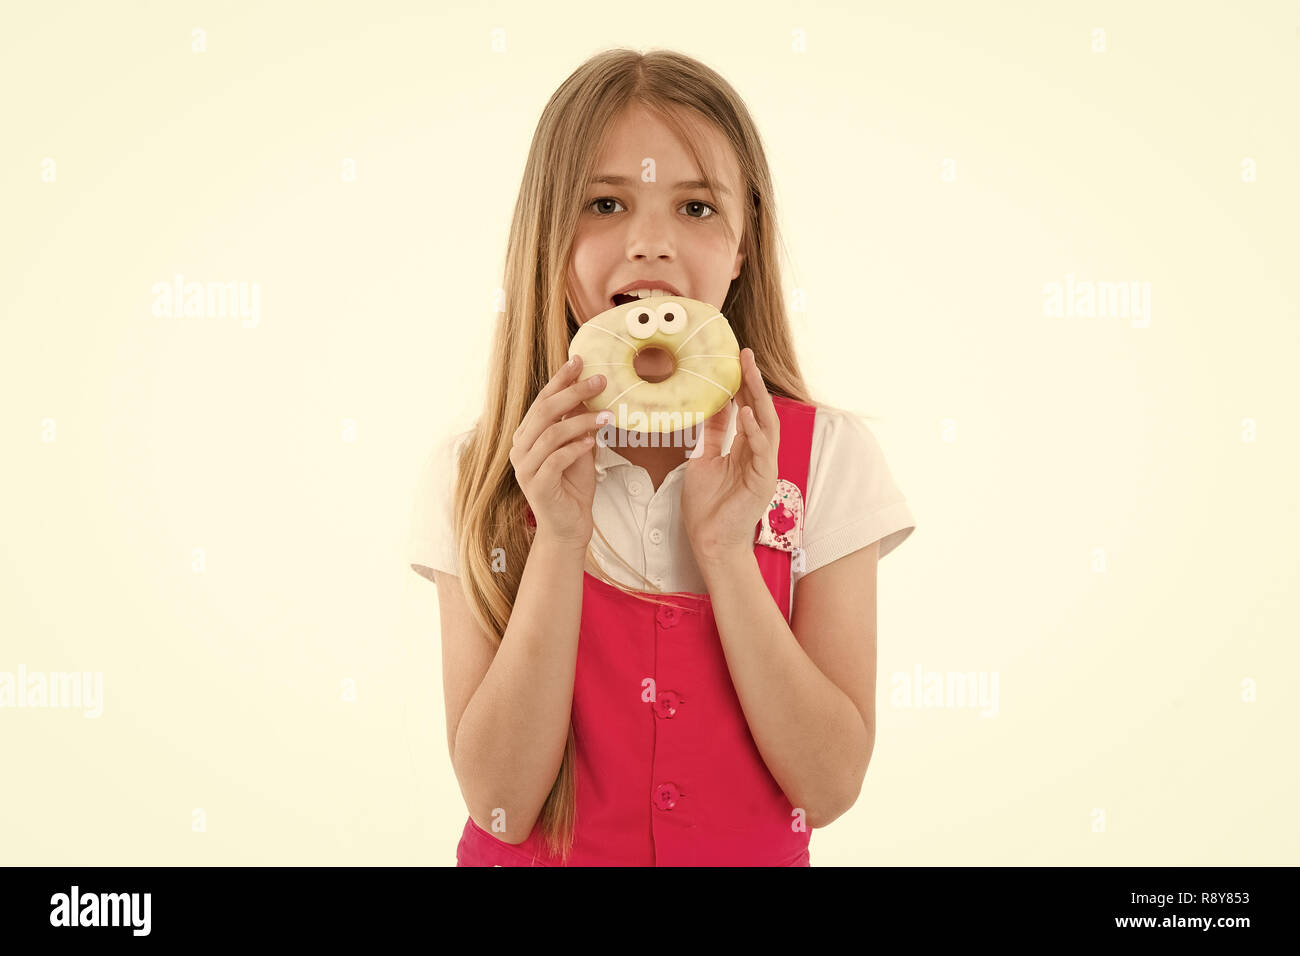 Little girl eat donut isolated on white. Child with glazed ring doughnut. Kid with junk food. Food for snack and dessert. dieting and fitness concept. Childhood and childcare, copy space. - Stock Image